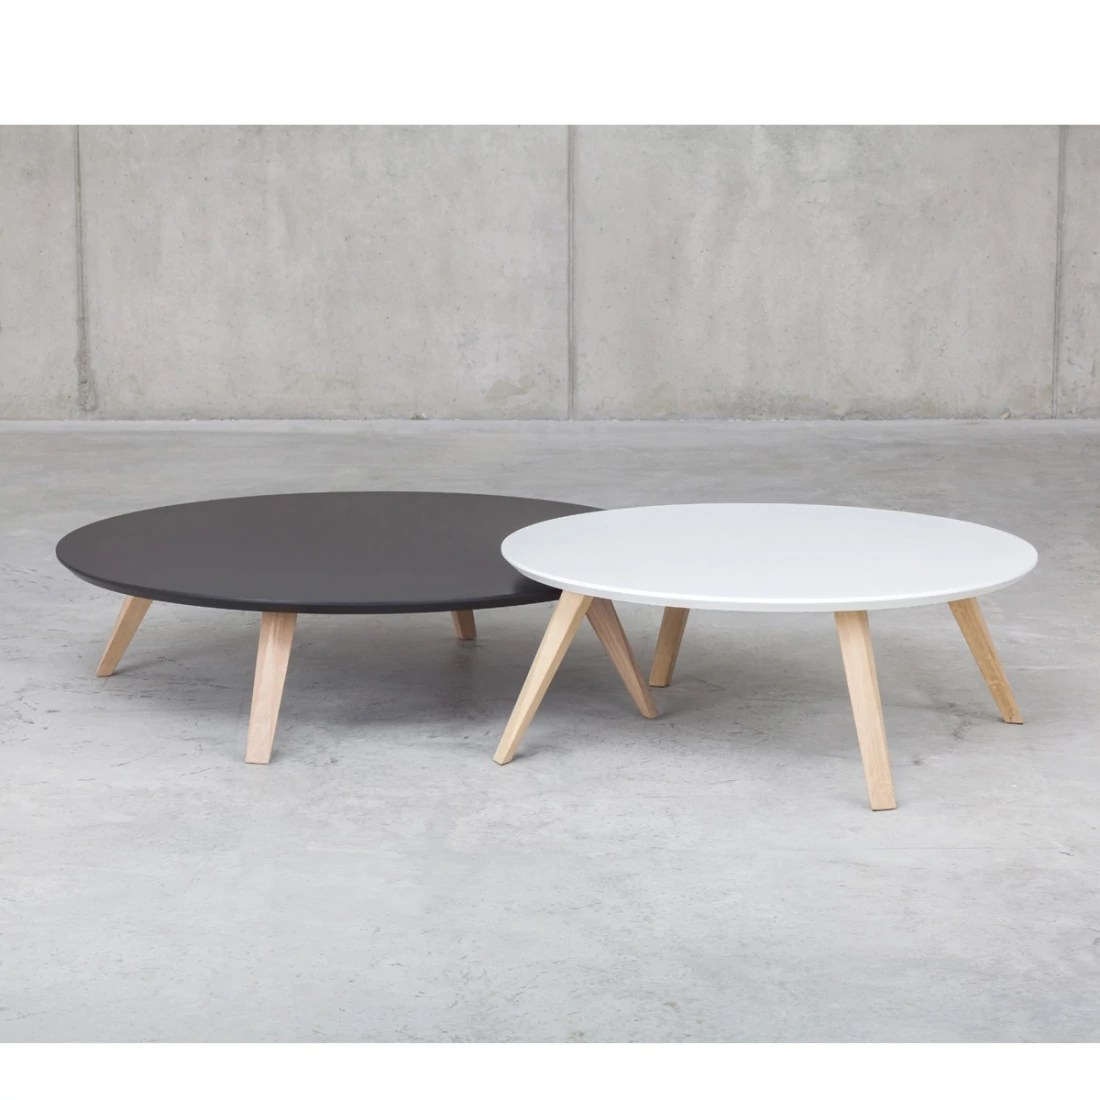 Table Basse Bois Design Table Basse En Bois Prostoria Zendart Design